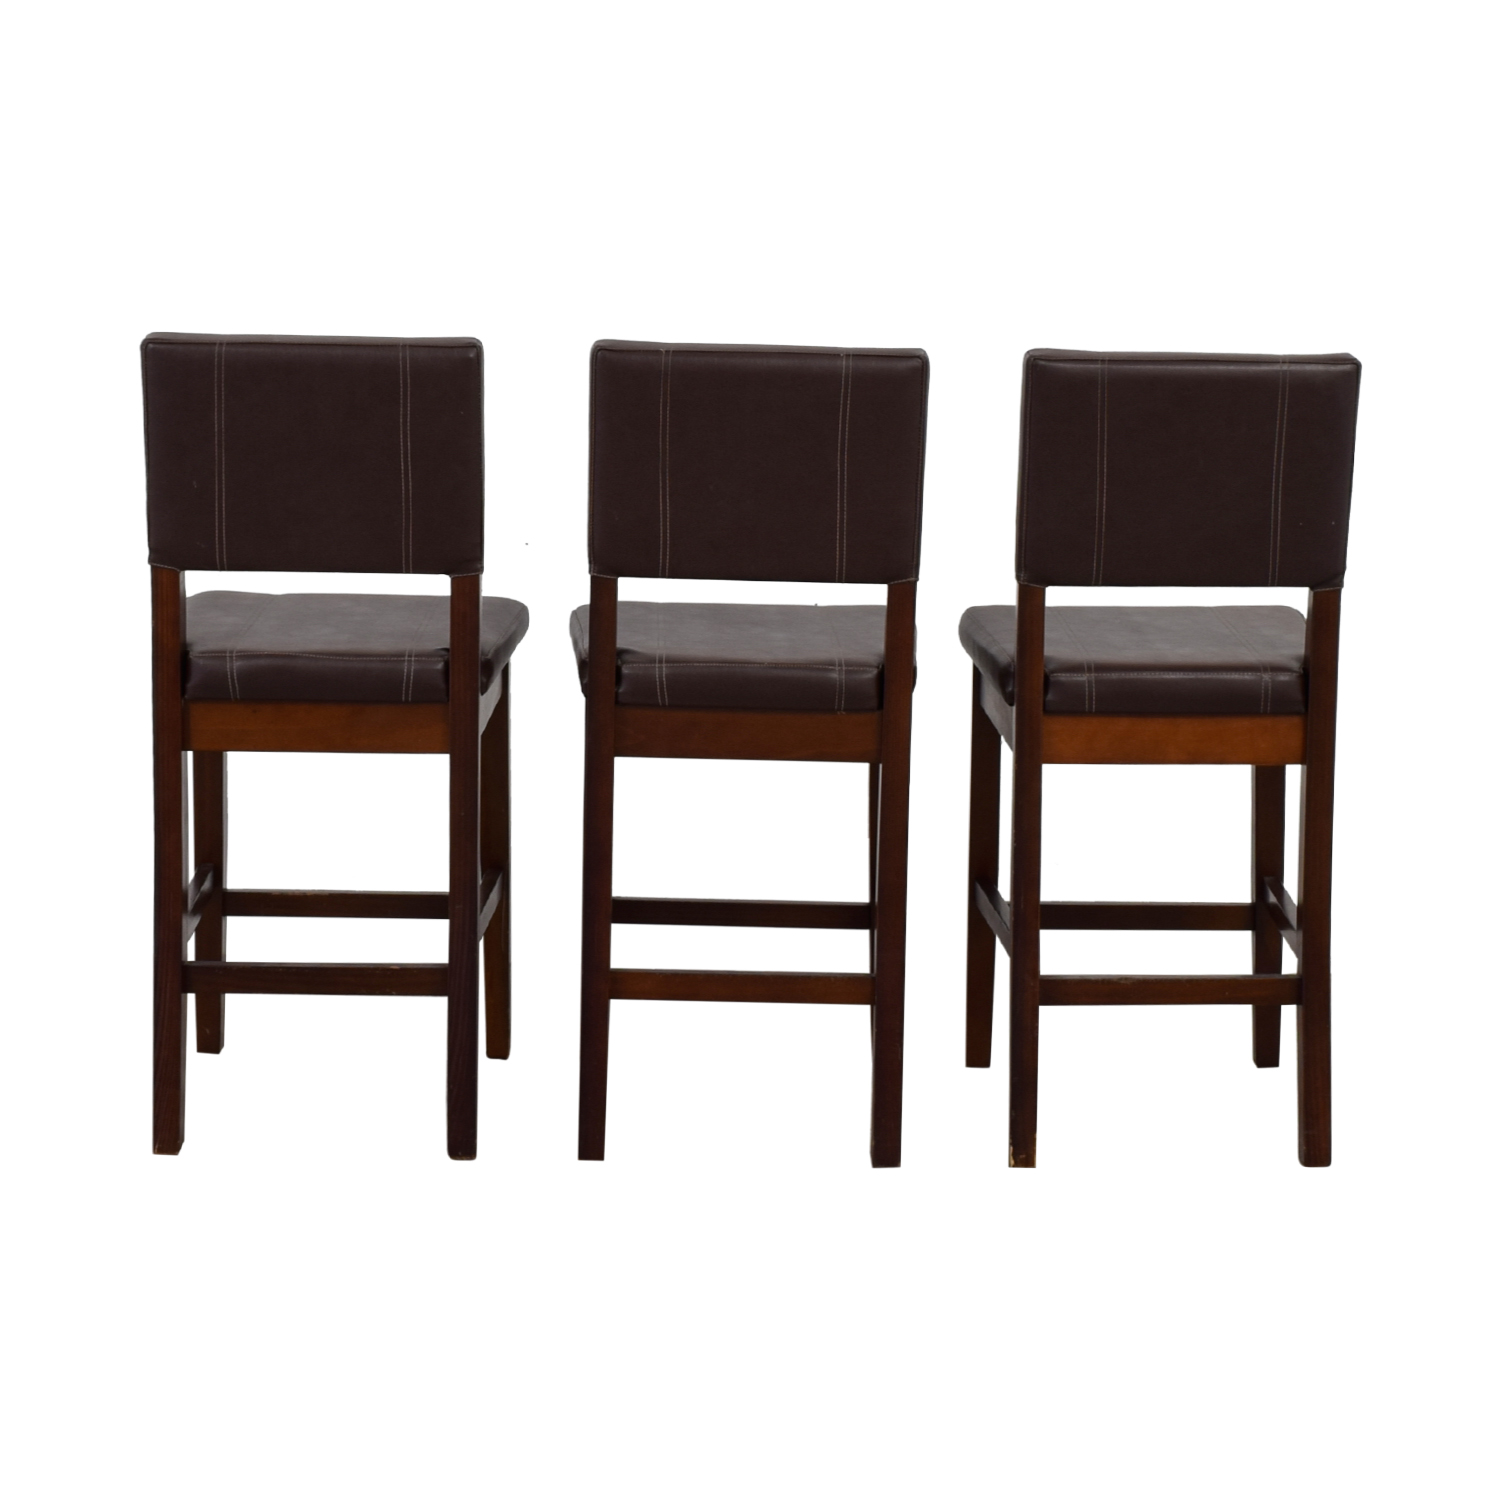 Pier 1 Imports Pier 1 Imports Brown Leather Stools Dark Brown, Brown